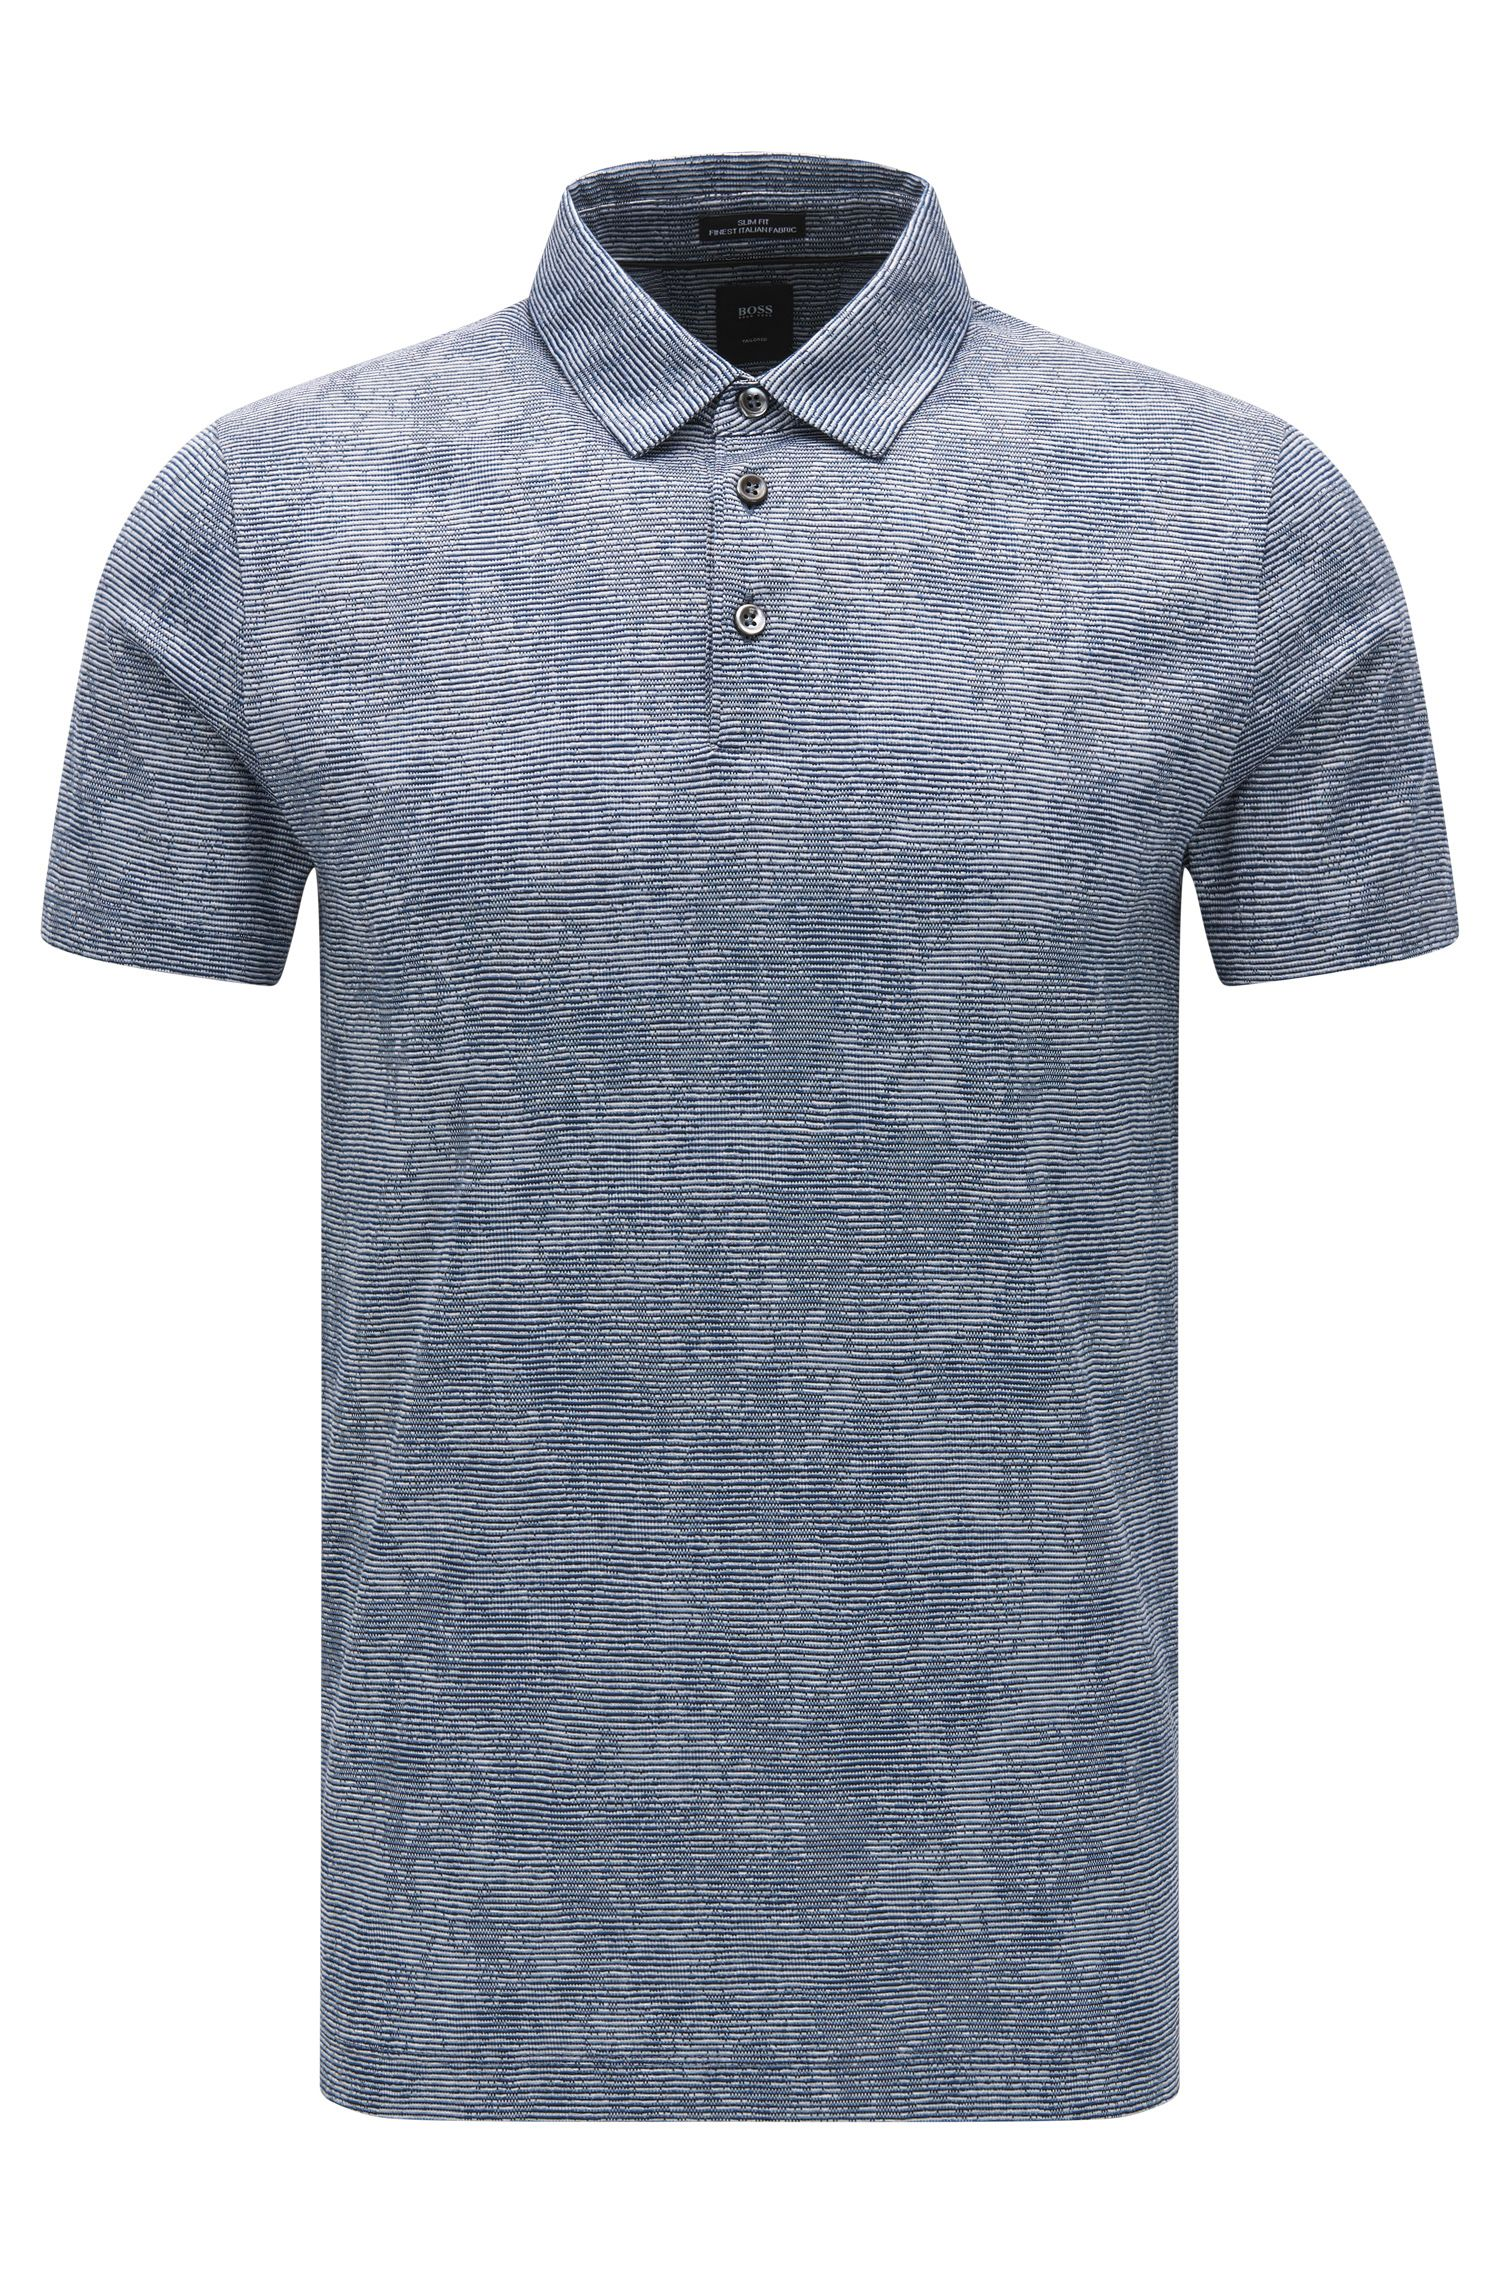 Slim-fit cotton polo shirt with knitted jacquard pattern